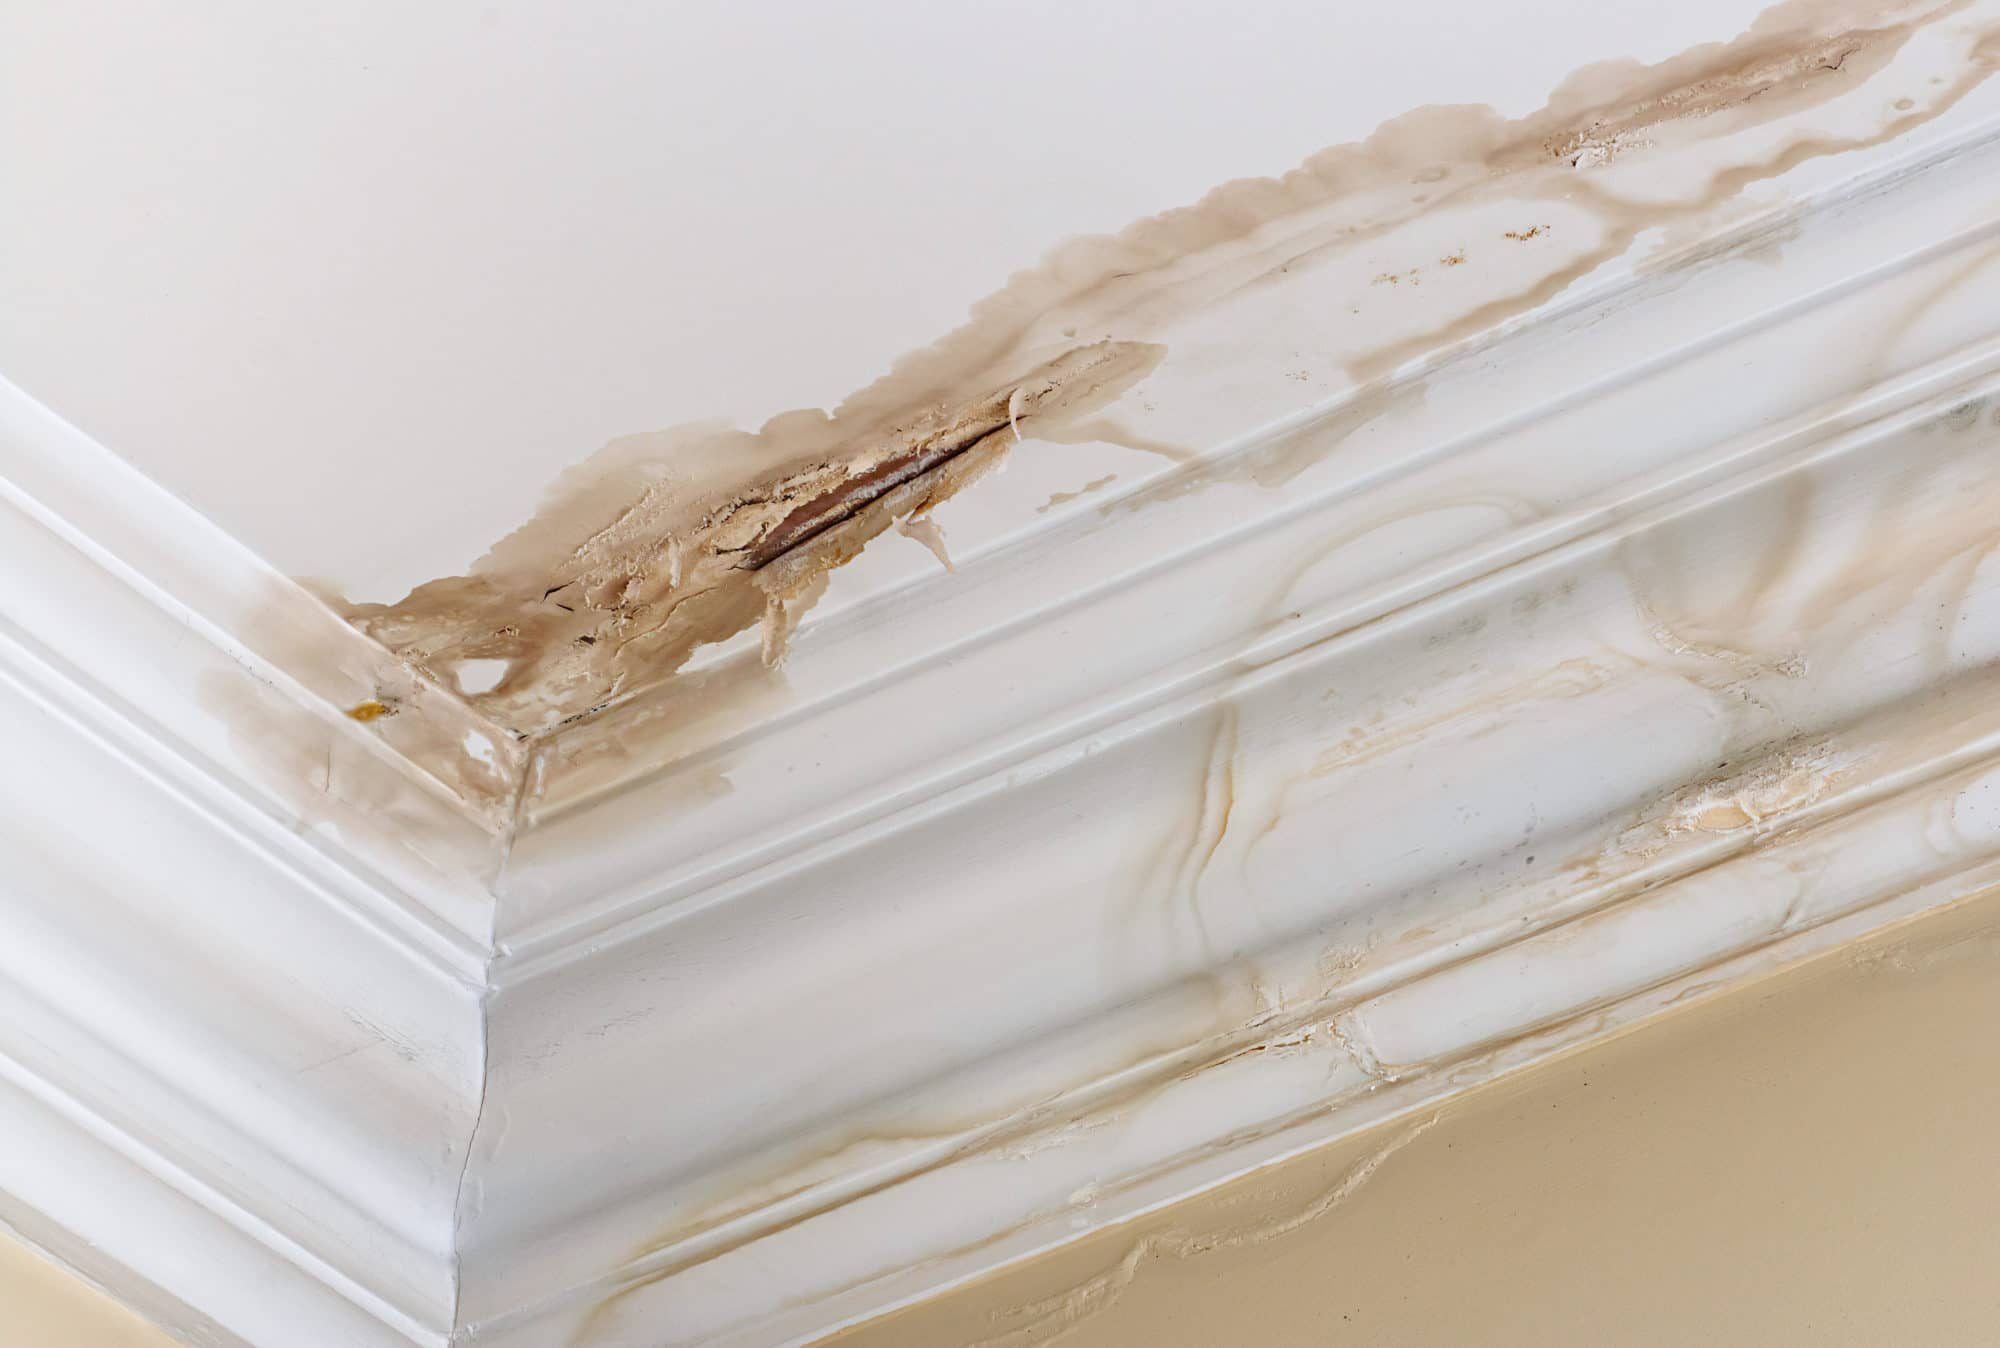 Peeling paint on an interior ceiling is a result of water damage caused by a leaking pipe dripping down from upstairs. It is a result of substandard plumbing completed by an unqualified plumber. A common home insurance claim.